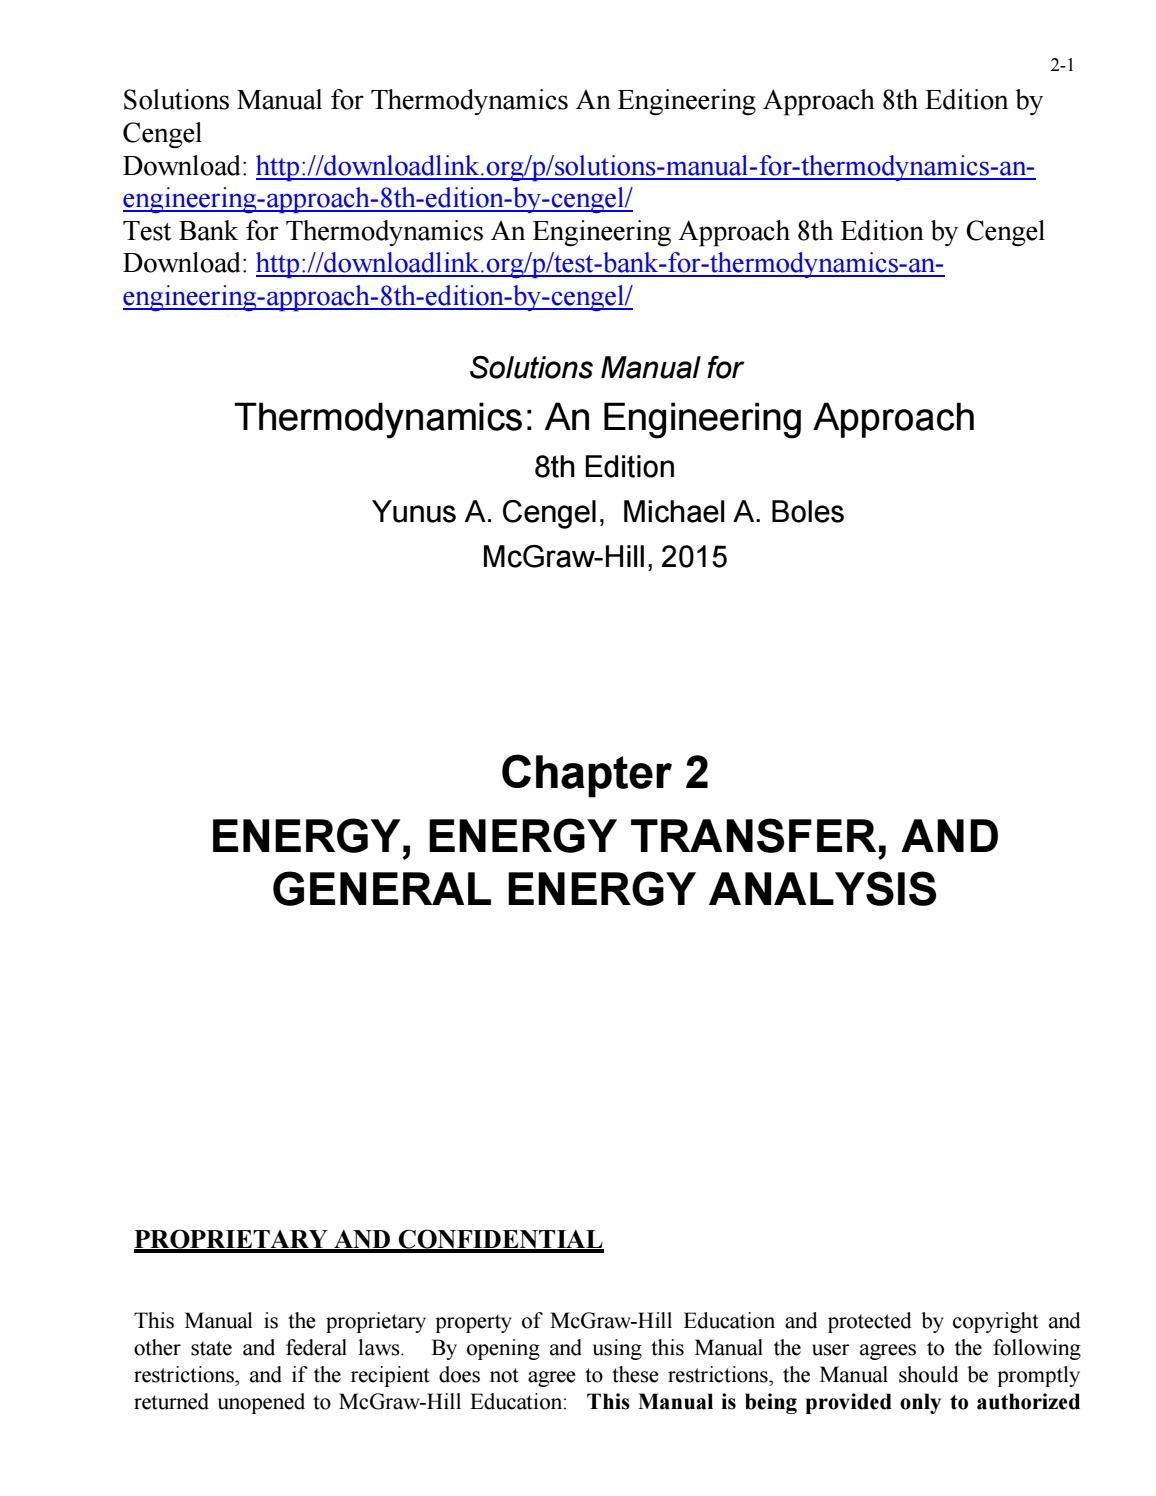 Solutions Manual for Thermodynamics An Engineering Approach 8th Edition by  Cengel by ys077 - issuu